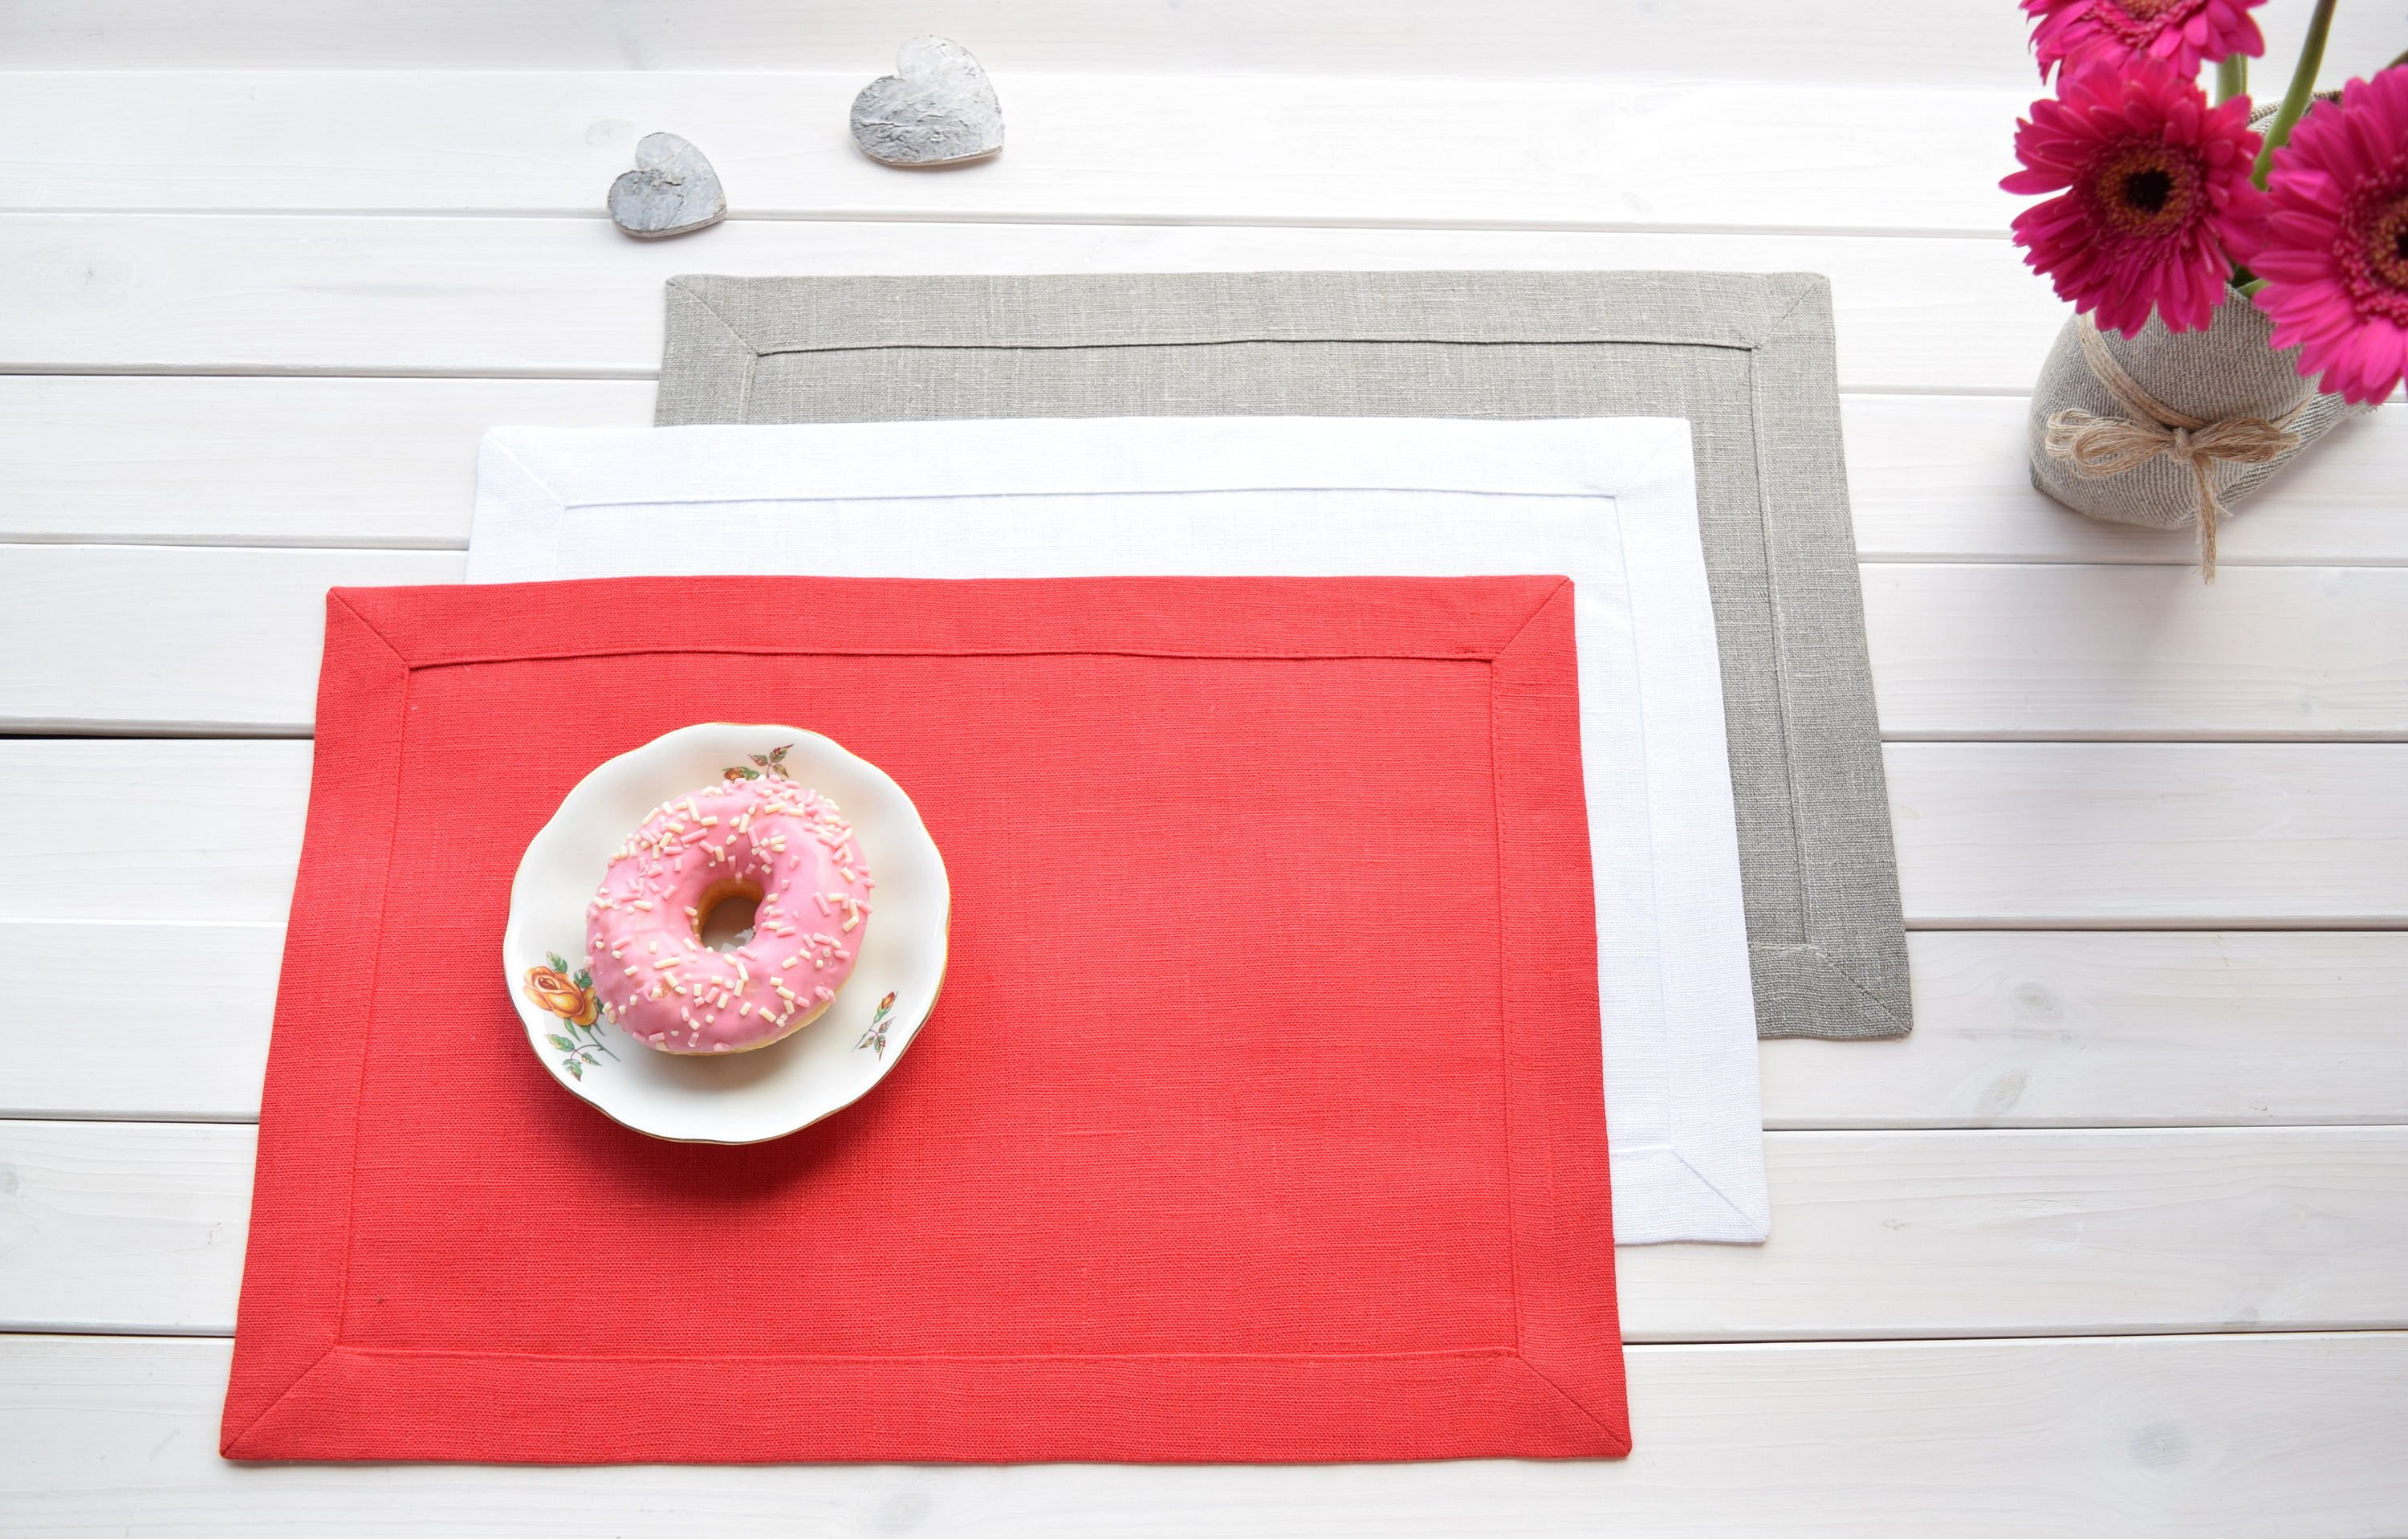 Linen Placemats Fabric Placemats Dining Table Mats Etsy Linen Placemats Fabric Placemats Placemats